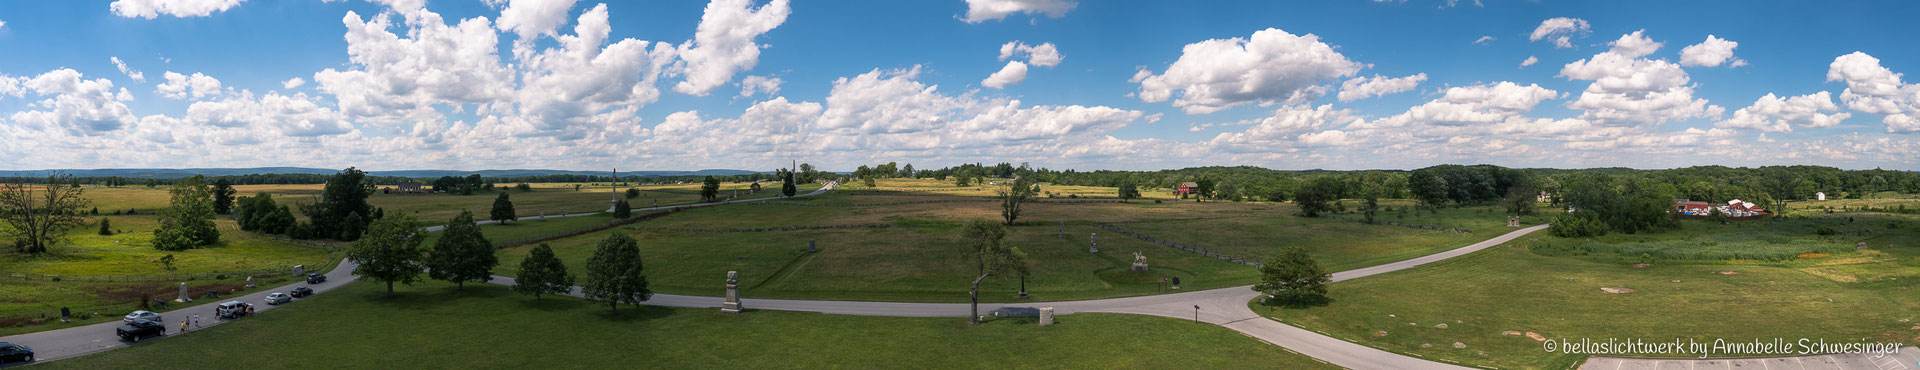 View vom Pennsylvania State Memorial im Gettysburg National Military Park aus